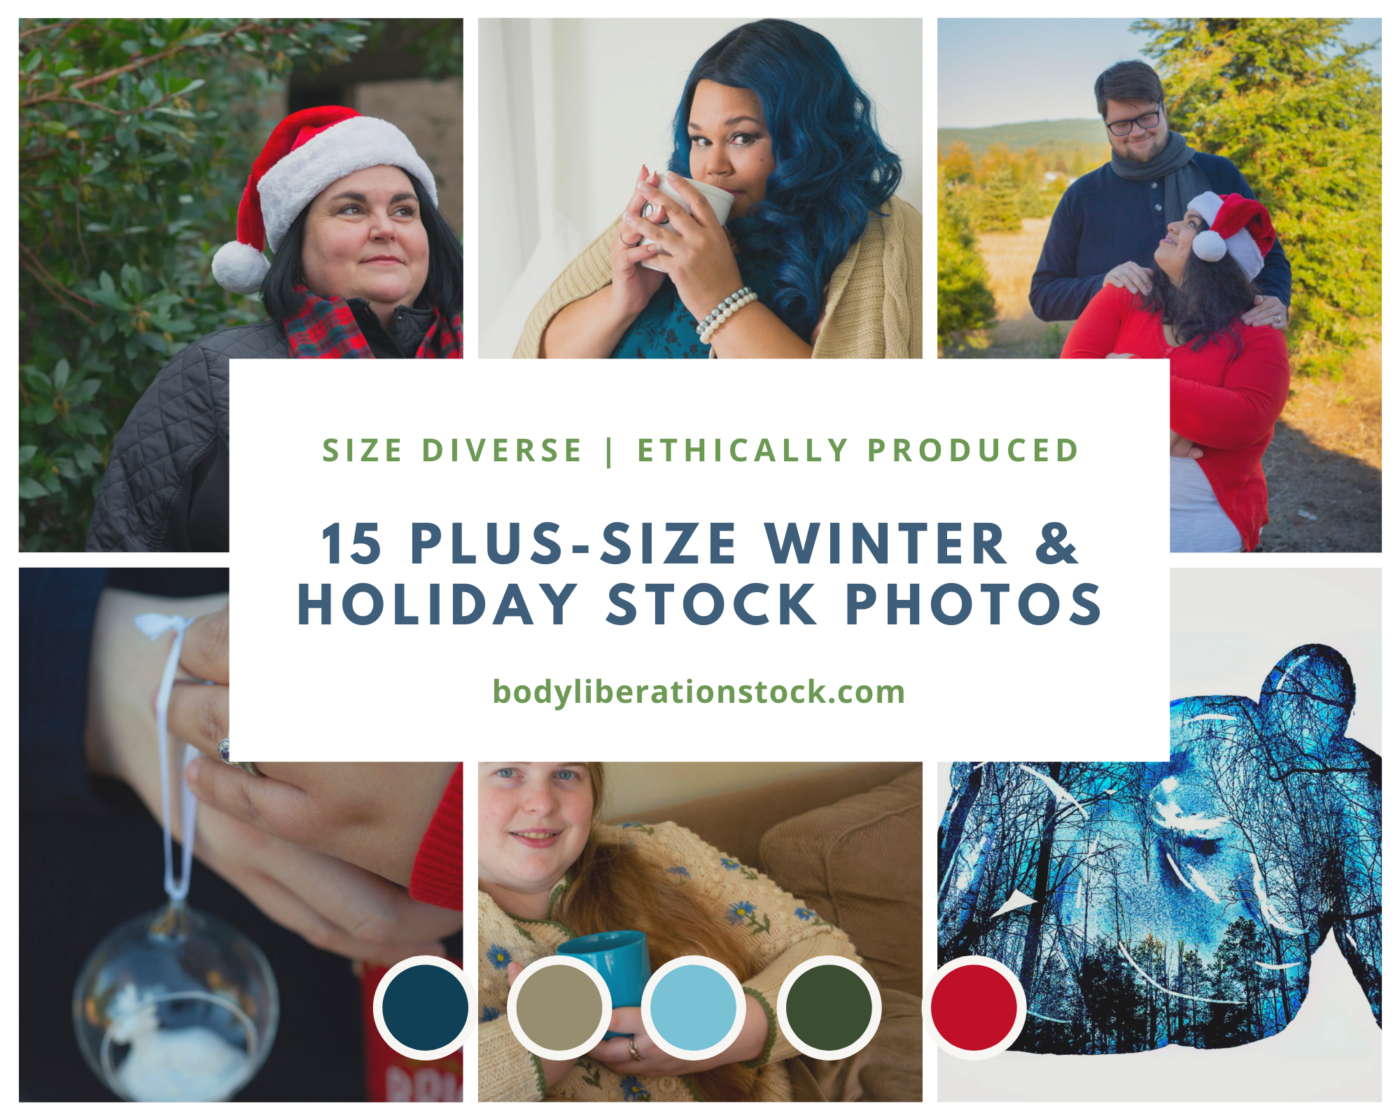 A collection of photos of larger-bodied people with the text 15 Plus-Size Winter & Holiday Stock Photos.